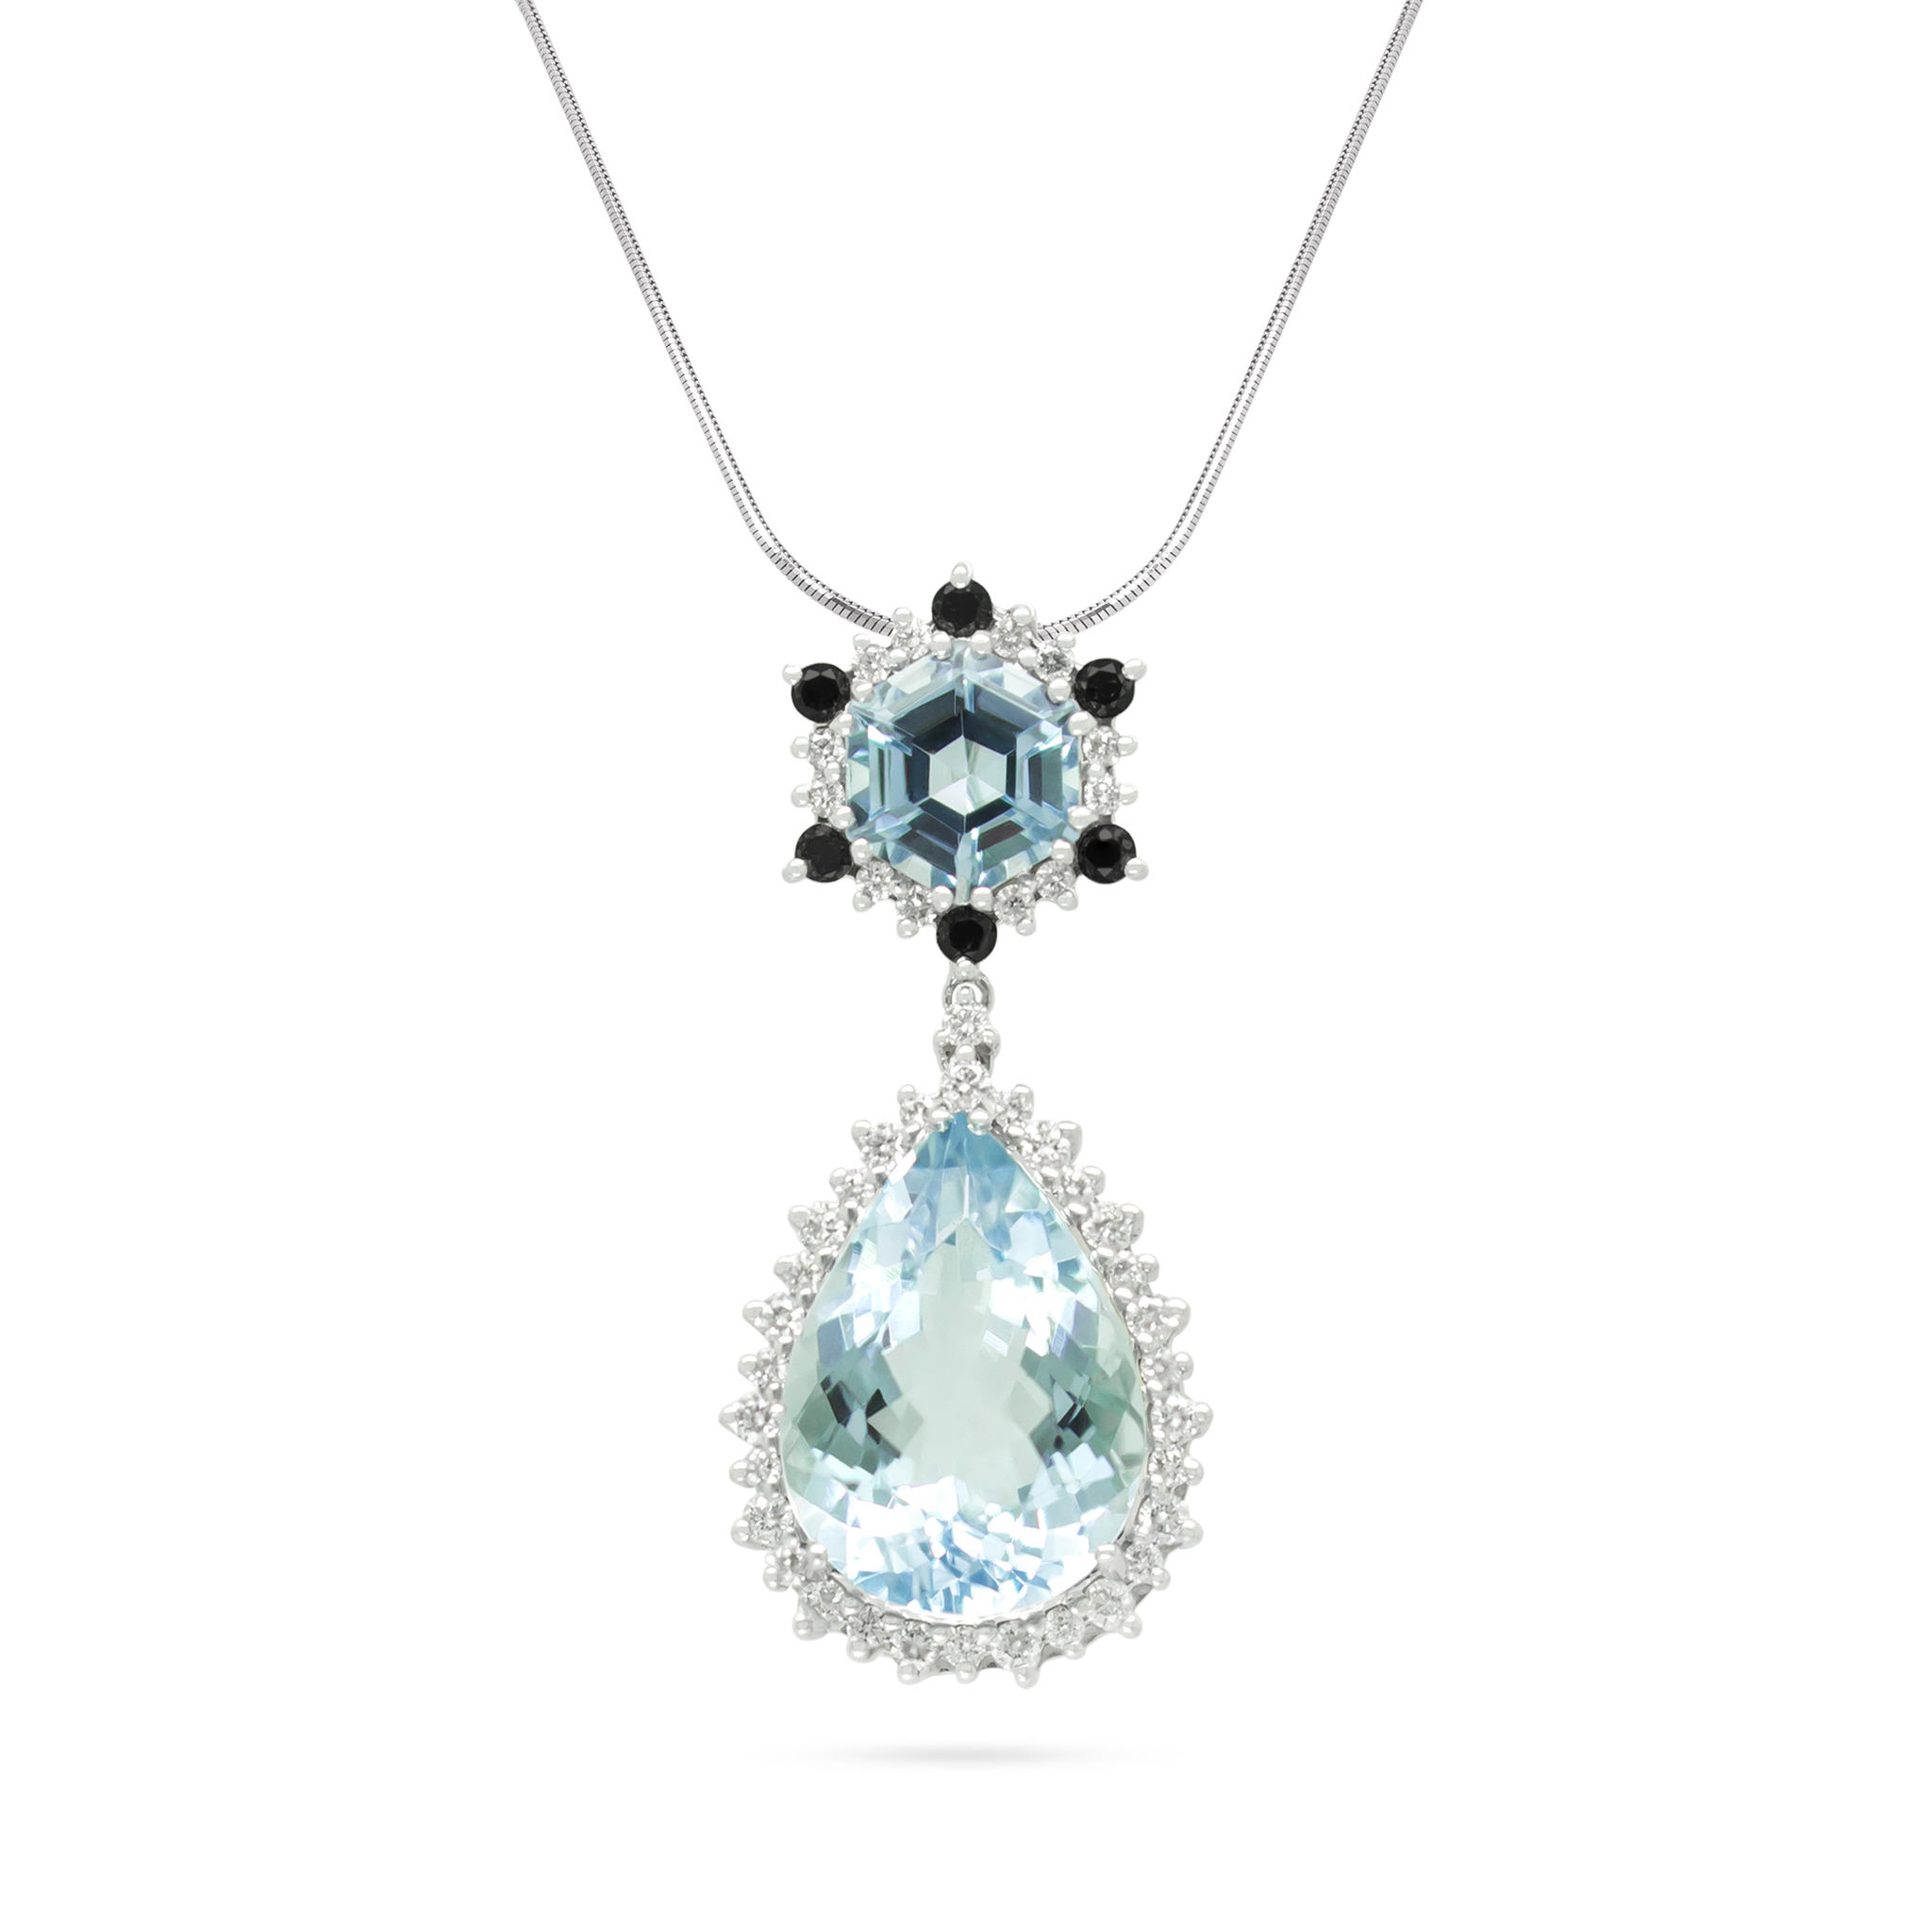 Aquamarine and Black Diamond Pendant